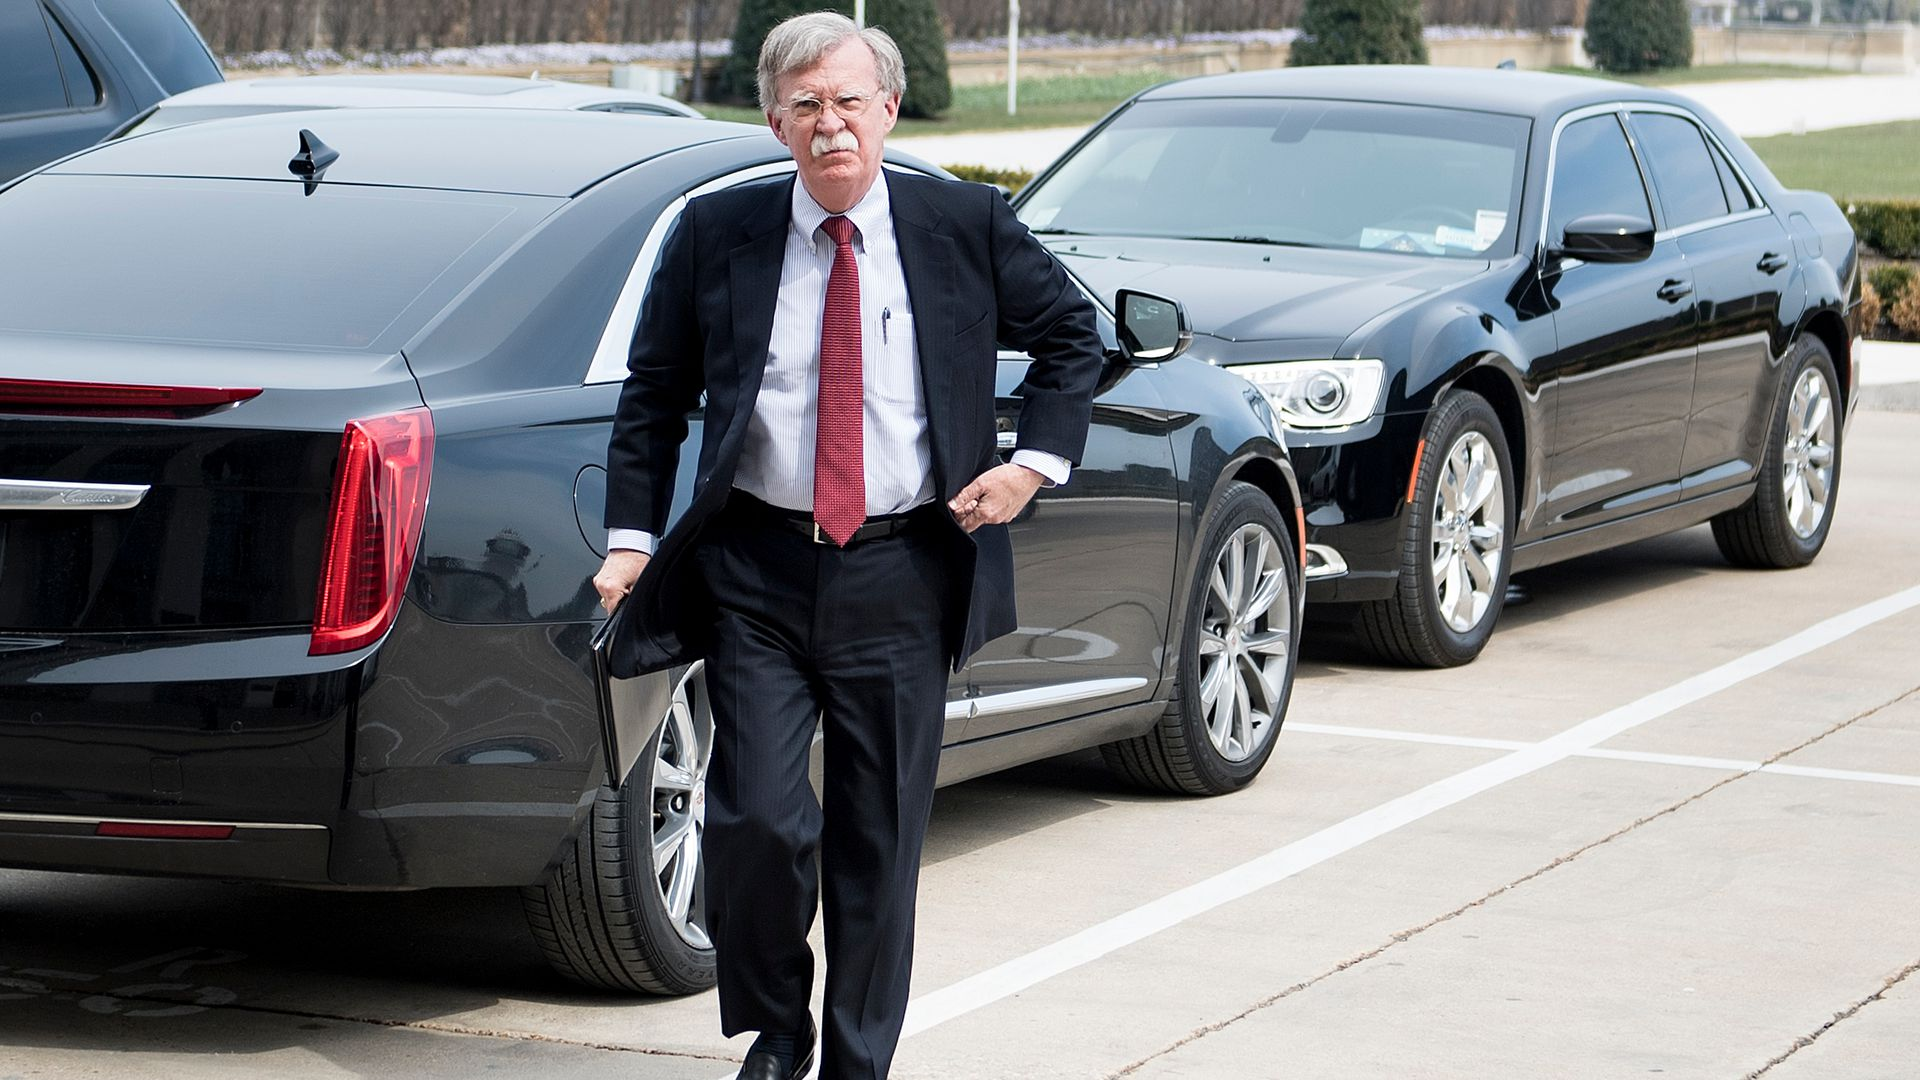 John Bolton in front of black cars